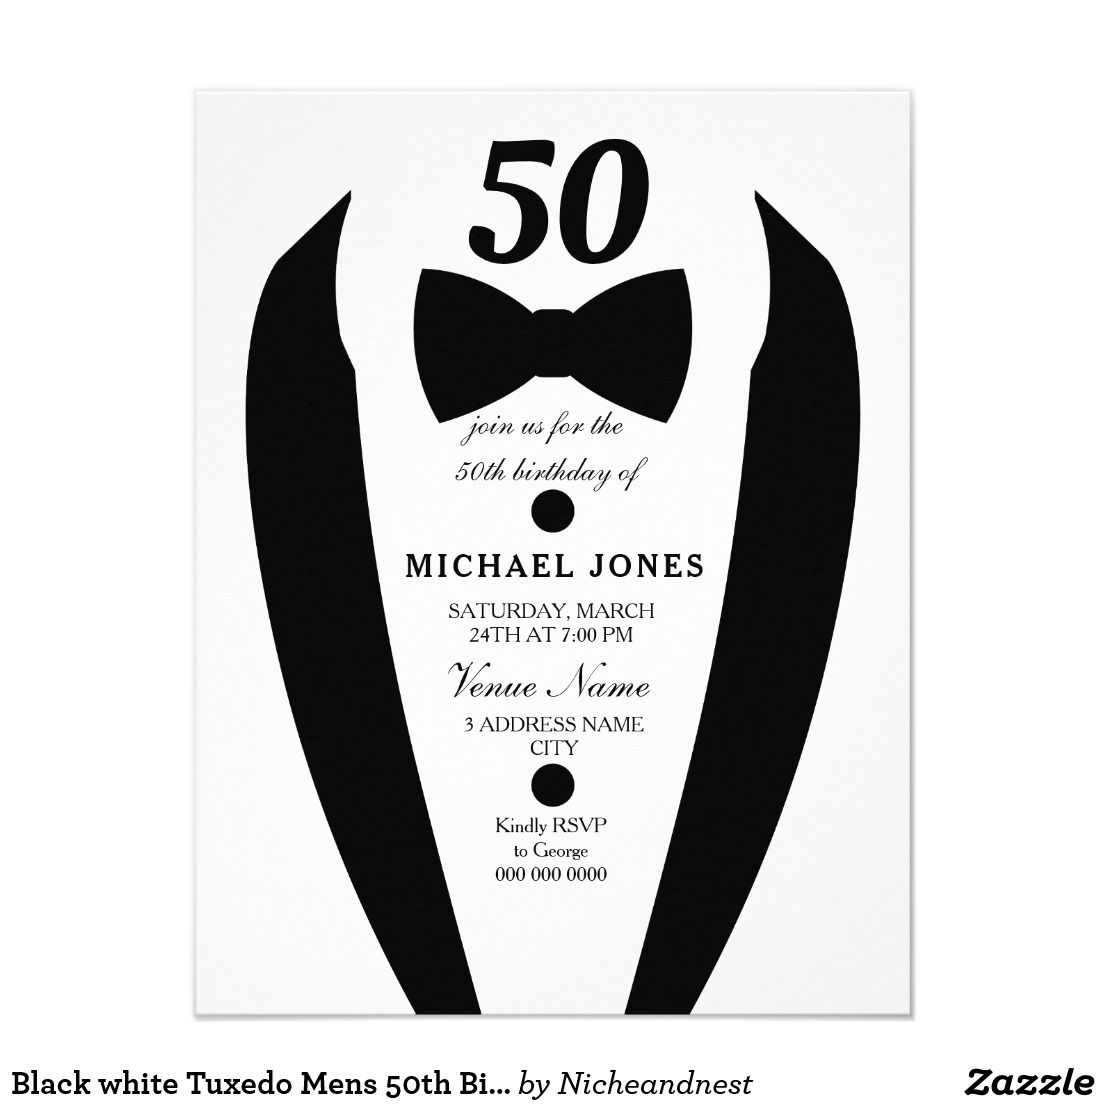 Black White Tuxedo Mens 50th Birthday Party Invite Matching Collection In Niche And Nest Store